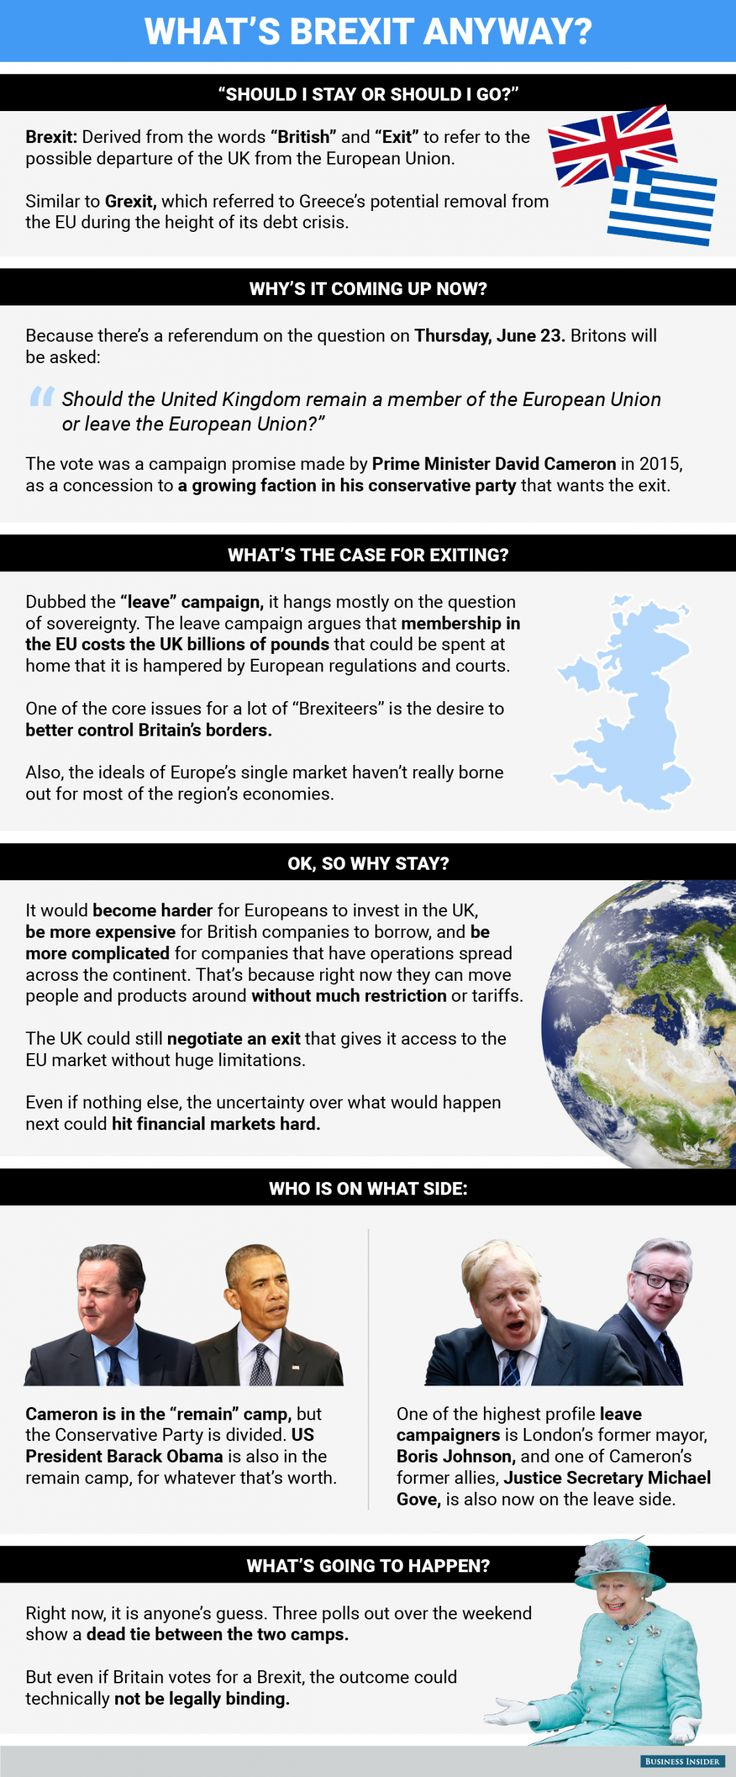 bi graphics what's brexit anyway